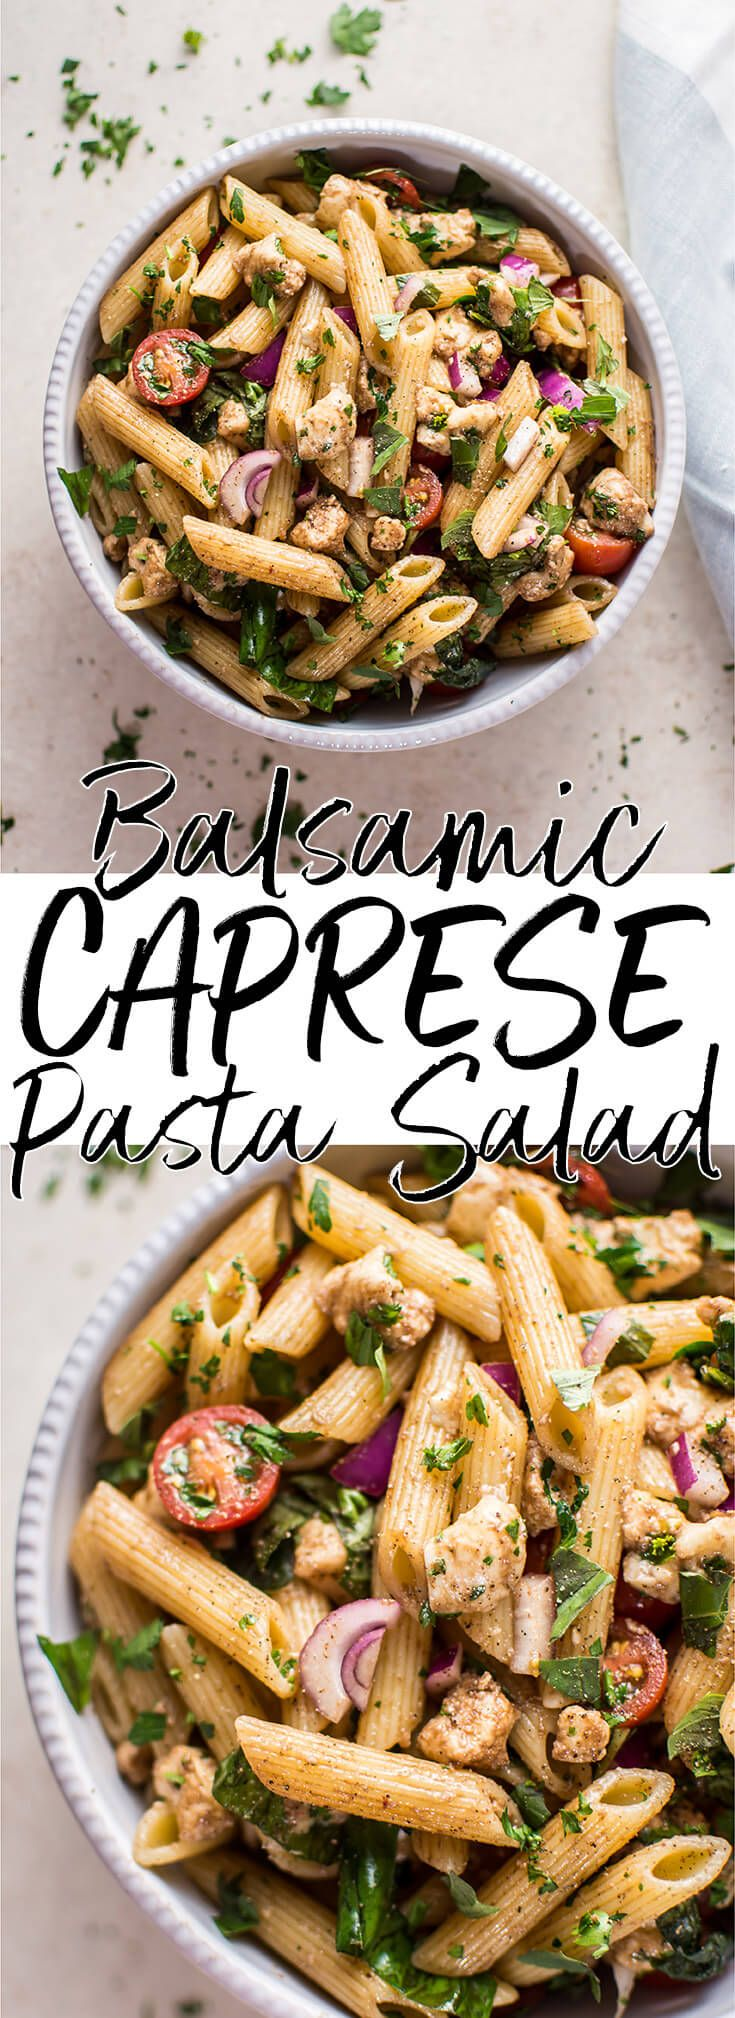 This balsamic caprese pasta salad is a light, quick, and simple vegetarian side dish that's perfect for picnics or BBQs. This pasta salad has the delicious classic caprese flavor combination of tomato